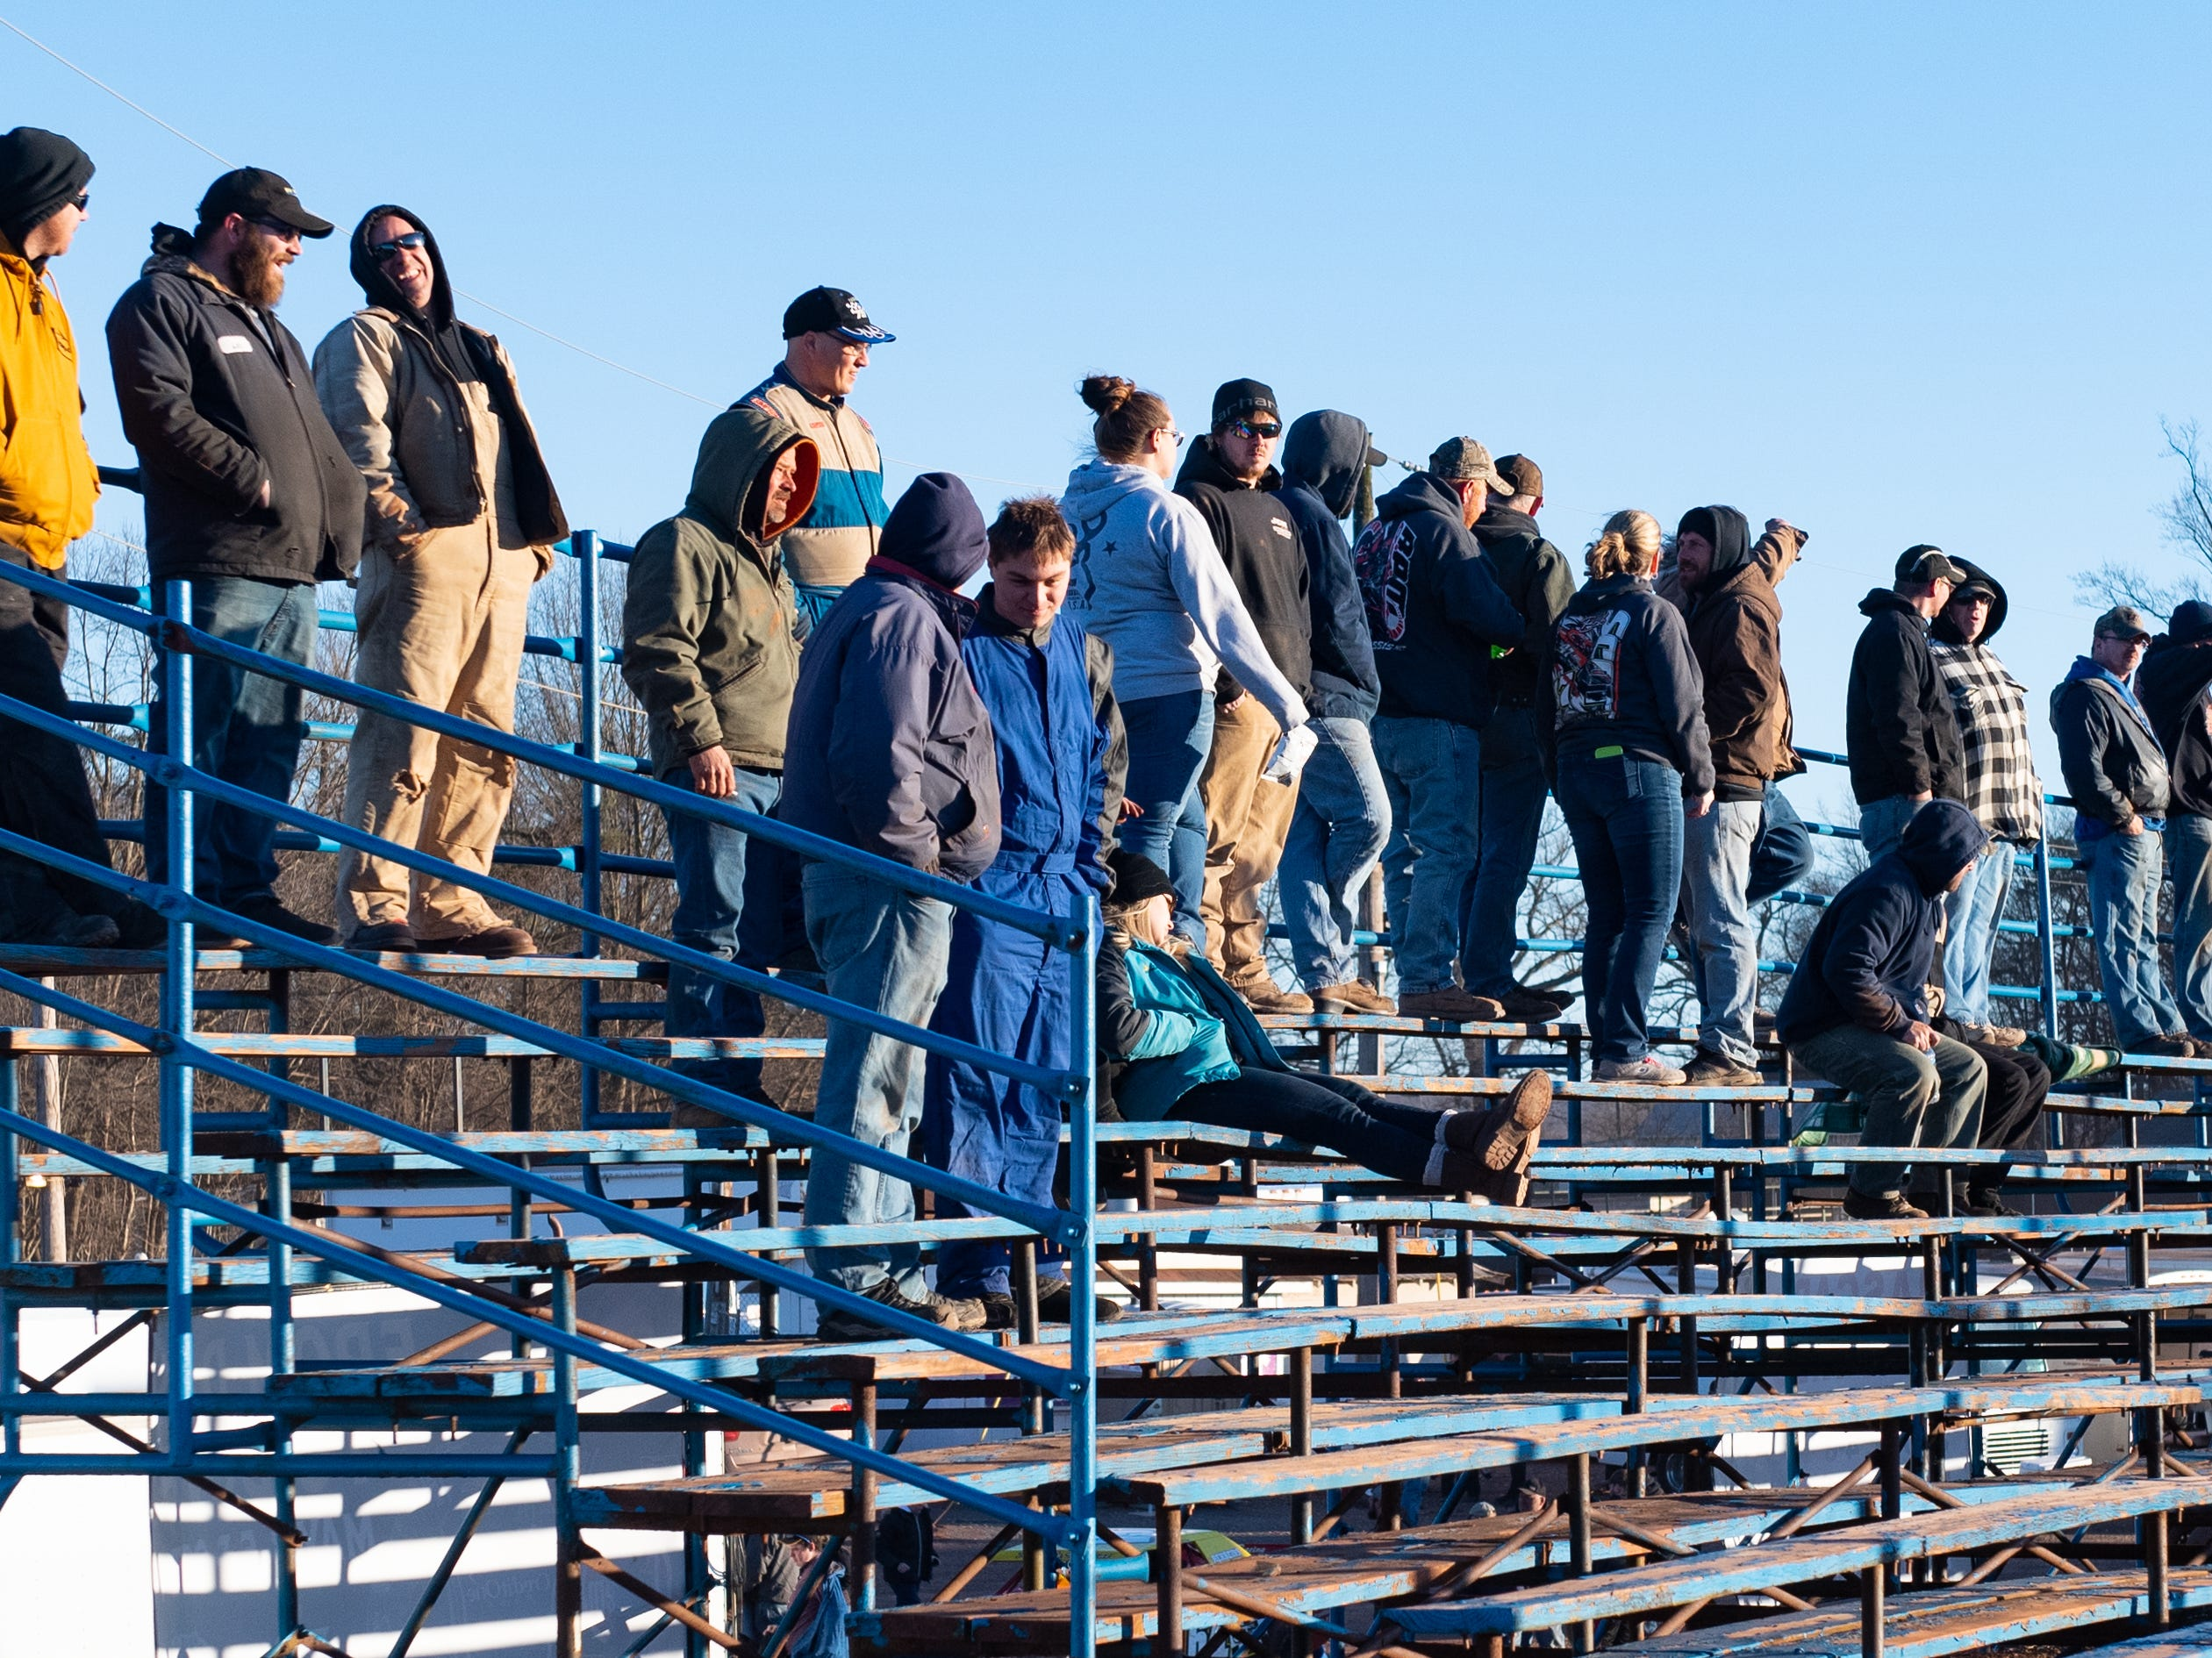 Spectators stand at the top of the bleachers to see over the fence during the 2019 season opener at BAPS Motor Speedway, March 23, 2019.